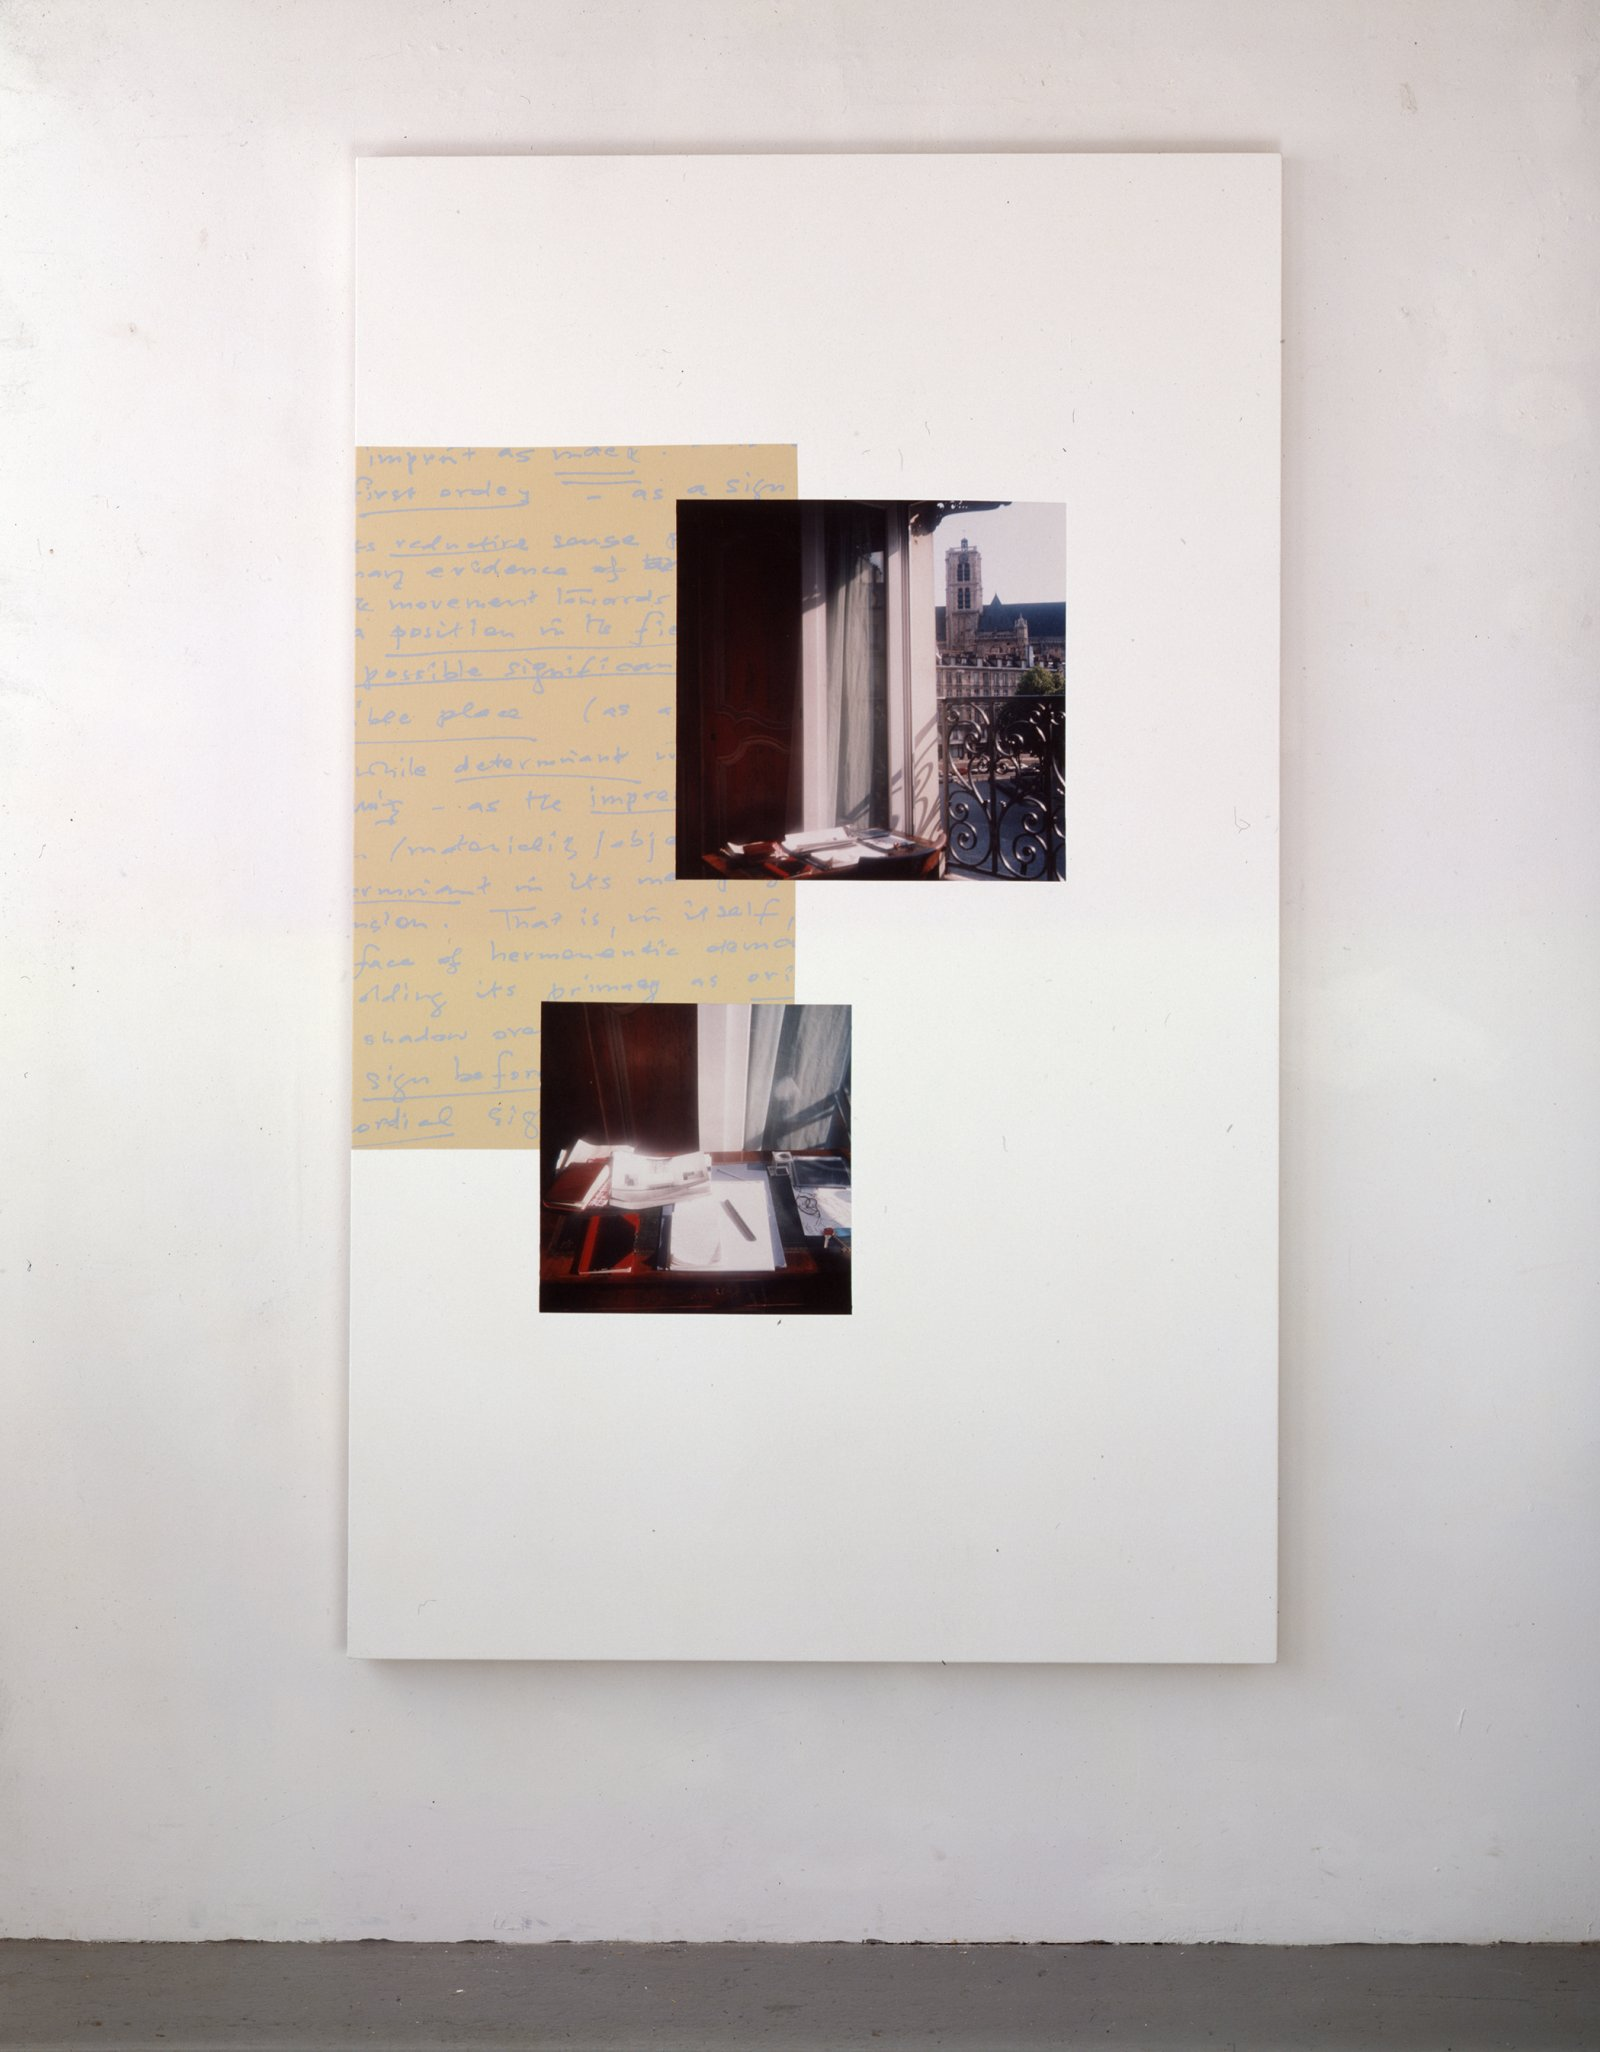 Ian Wallace,Notes on the Imprint, 1996,acrylic and photolaminate on canvas, 78 x 48 in. (198 x 122 cm)